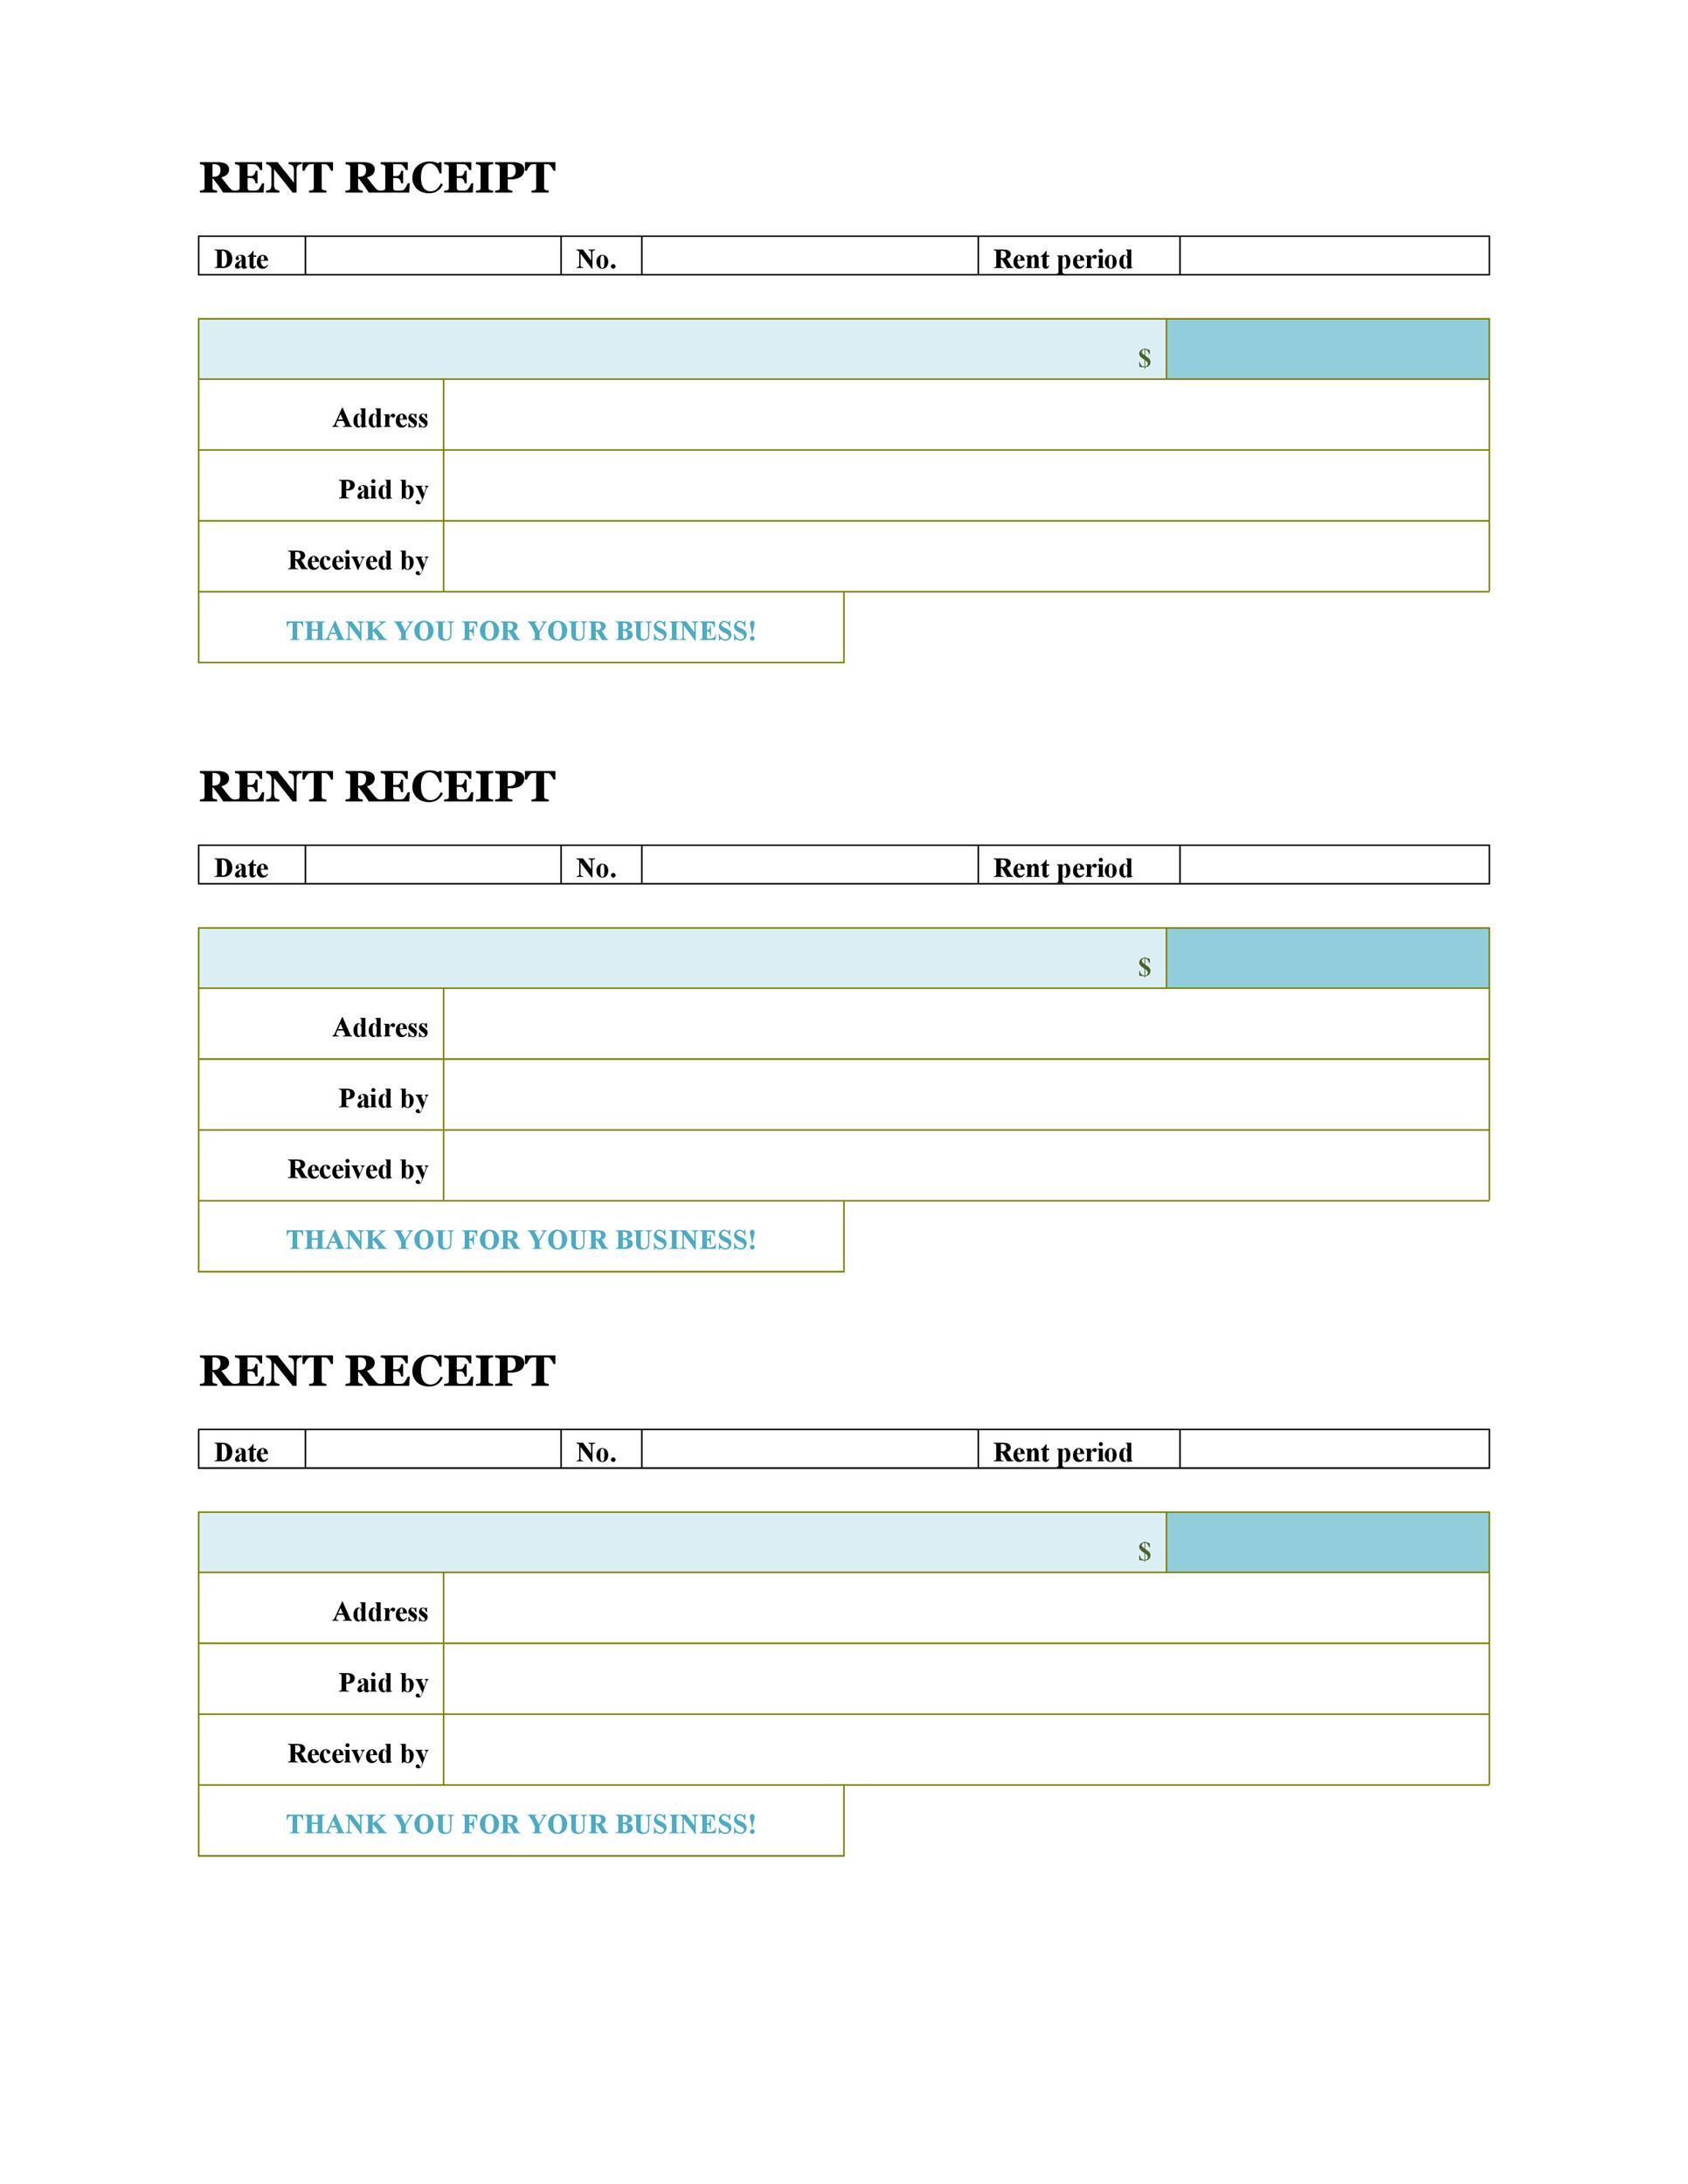 50 Free Receipt Templates Cash Sales Donation Taxi – Format for House Rent Receipt